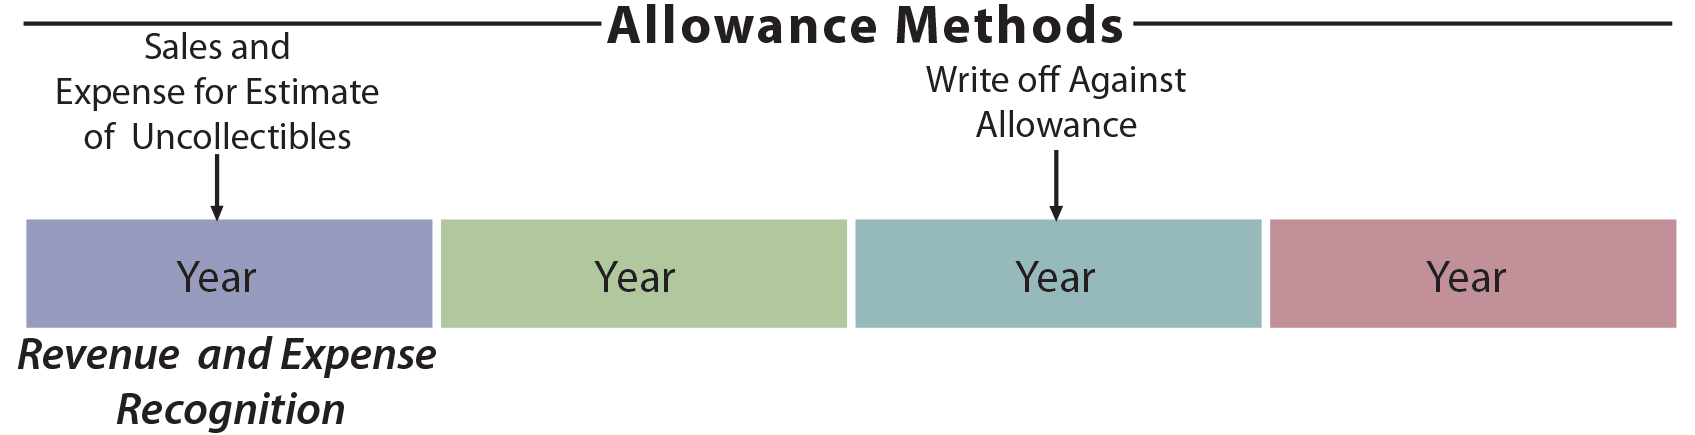 Allowance Method illustration